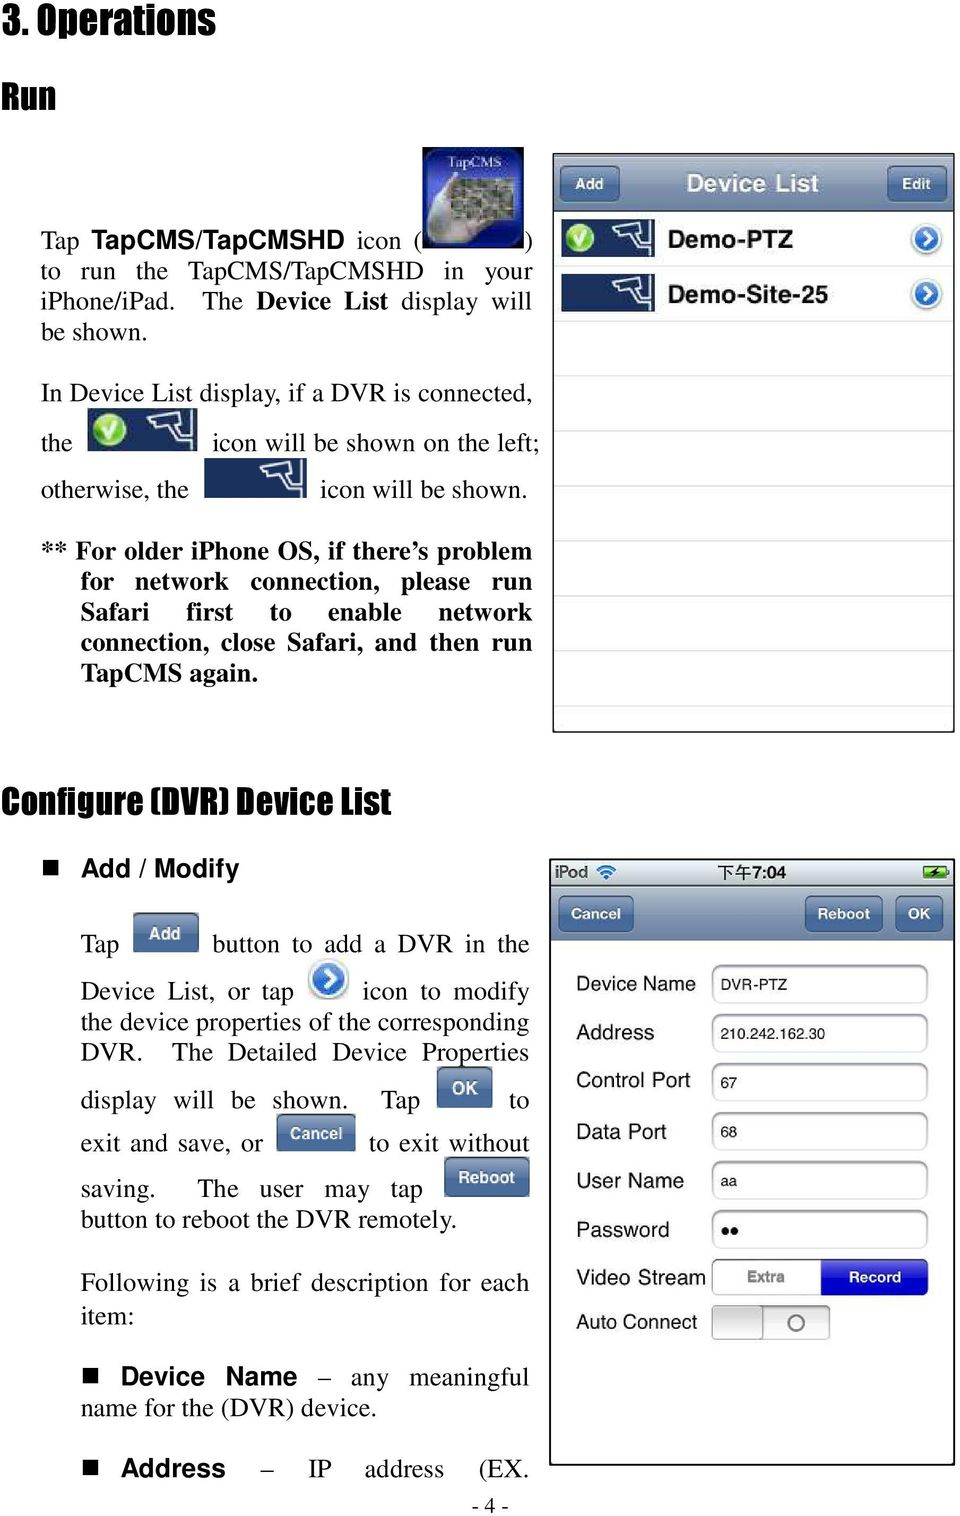 TapCMS/TapCMSHD for iphone/ipad (Central Monitoring Software